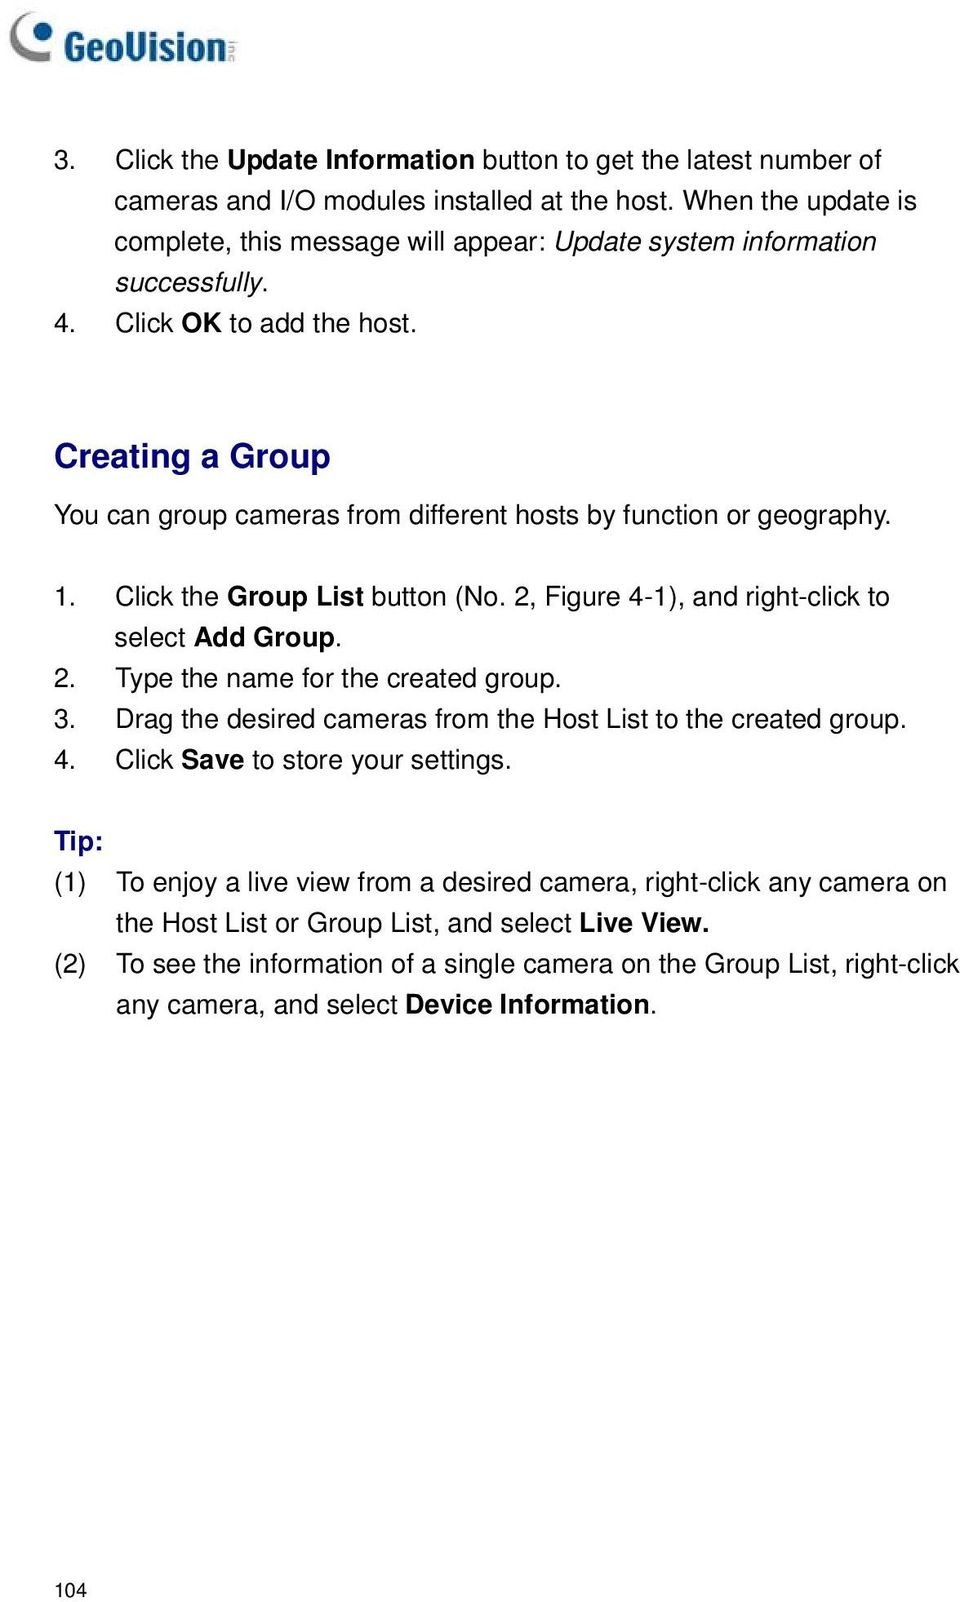 Creating a Group You can group cameras from different hosts by function or geography. 1. Click the Group List button (No. 2, Figure 4-1), and right-click to select Add Group. 2. Type the name for the created group.